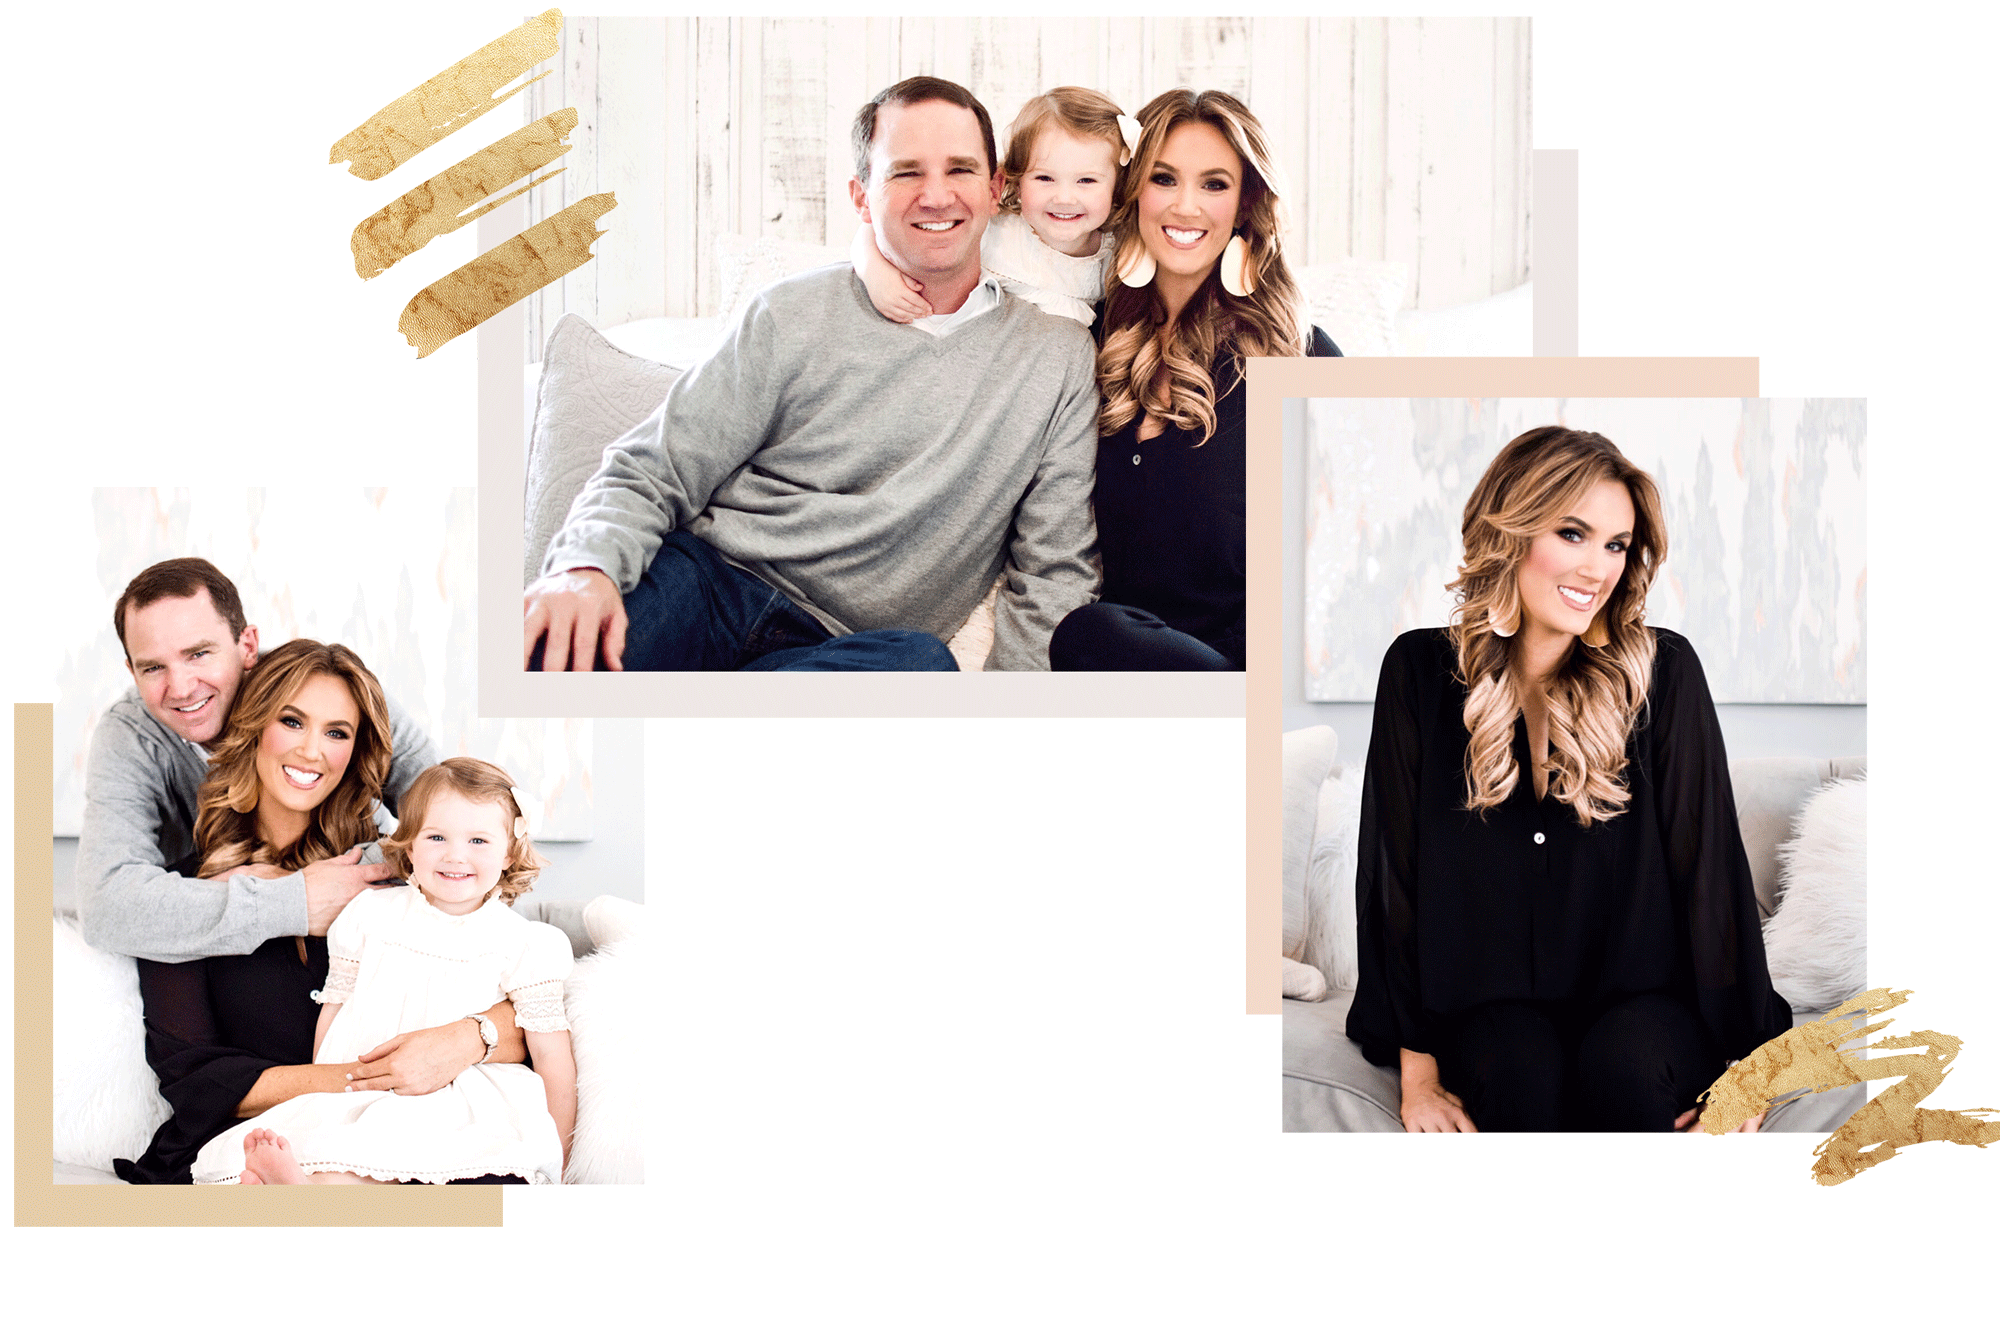 collection of photos of gilded garment owner, Erin Poe, with her husband and young daughter